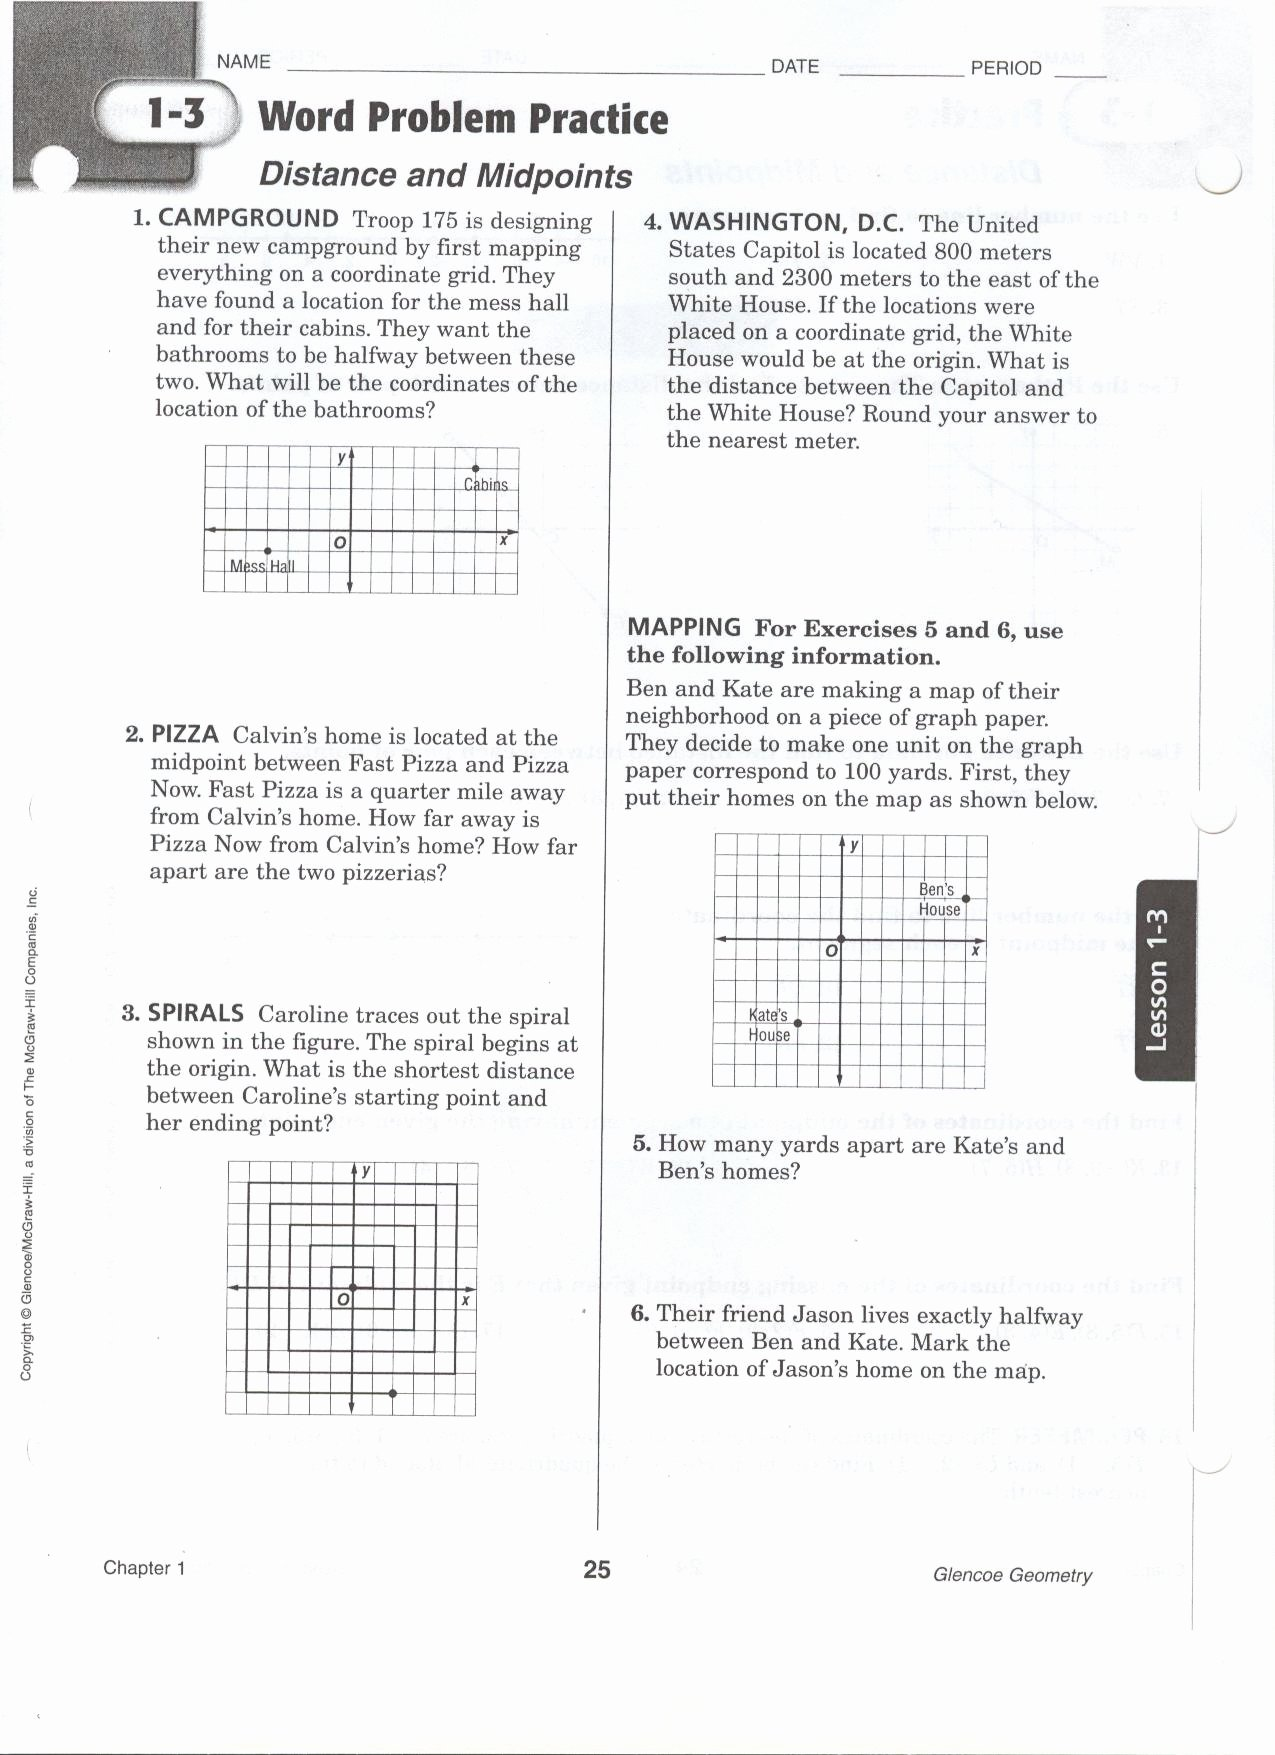 Distance formula Word Problems Worksheet Luxury Midpoint and Distance Worksheet